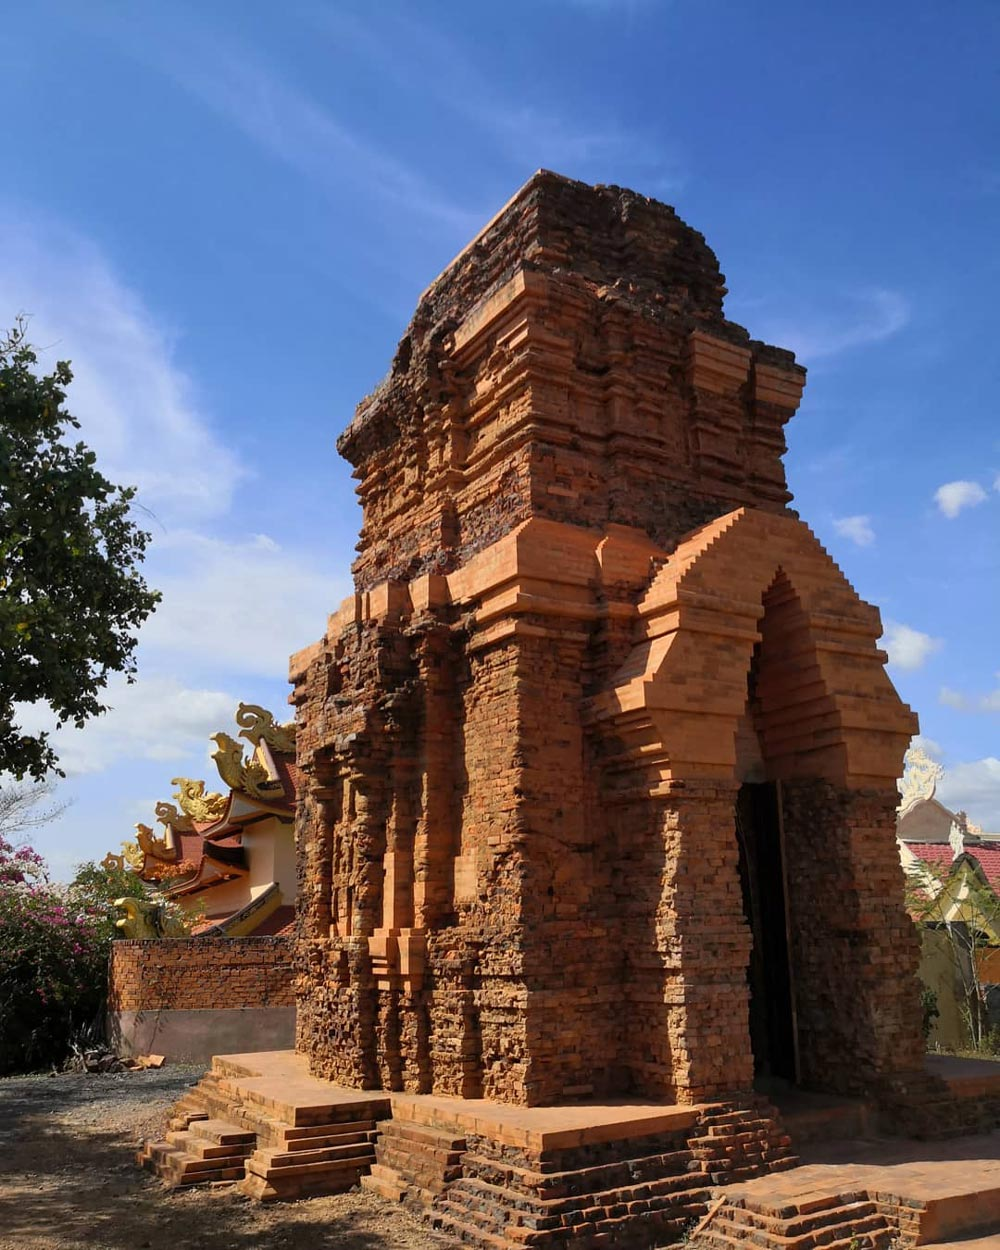 Explore Hindu Ruins at Po Sah Inu Cham Towers